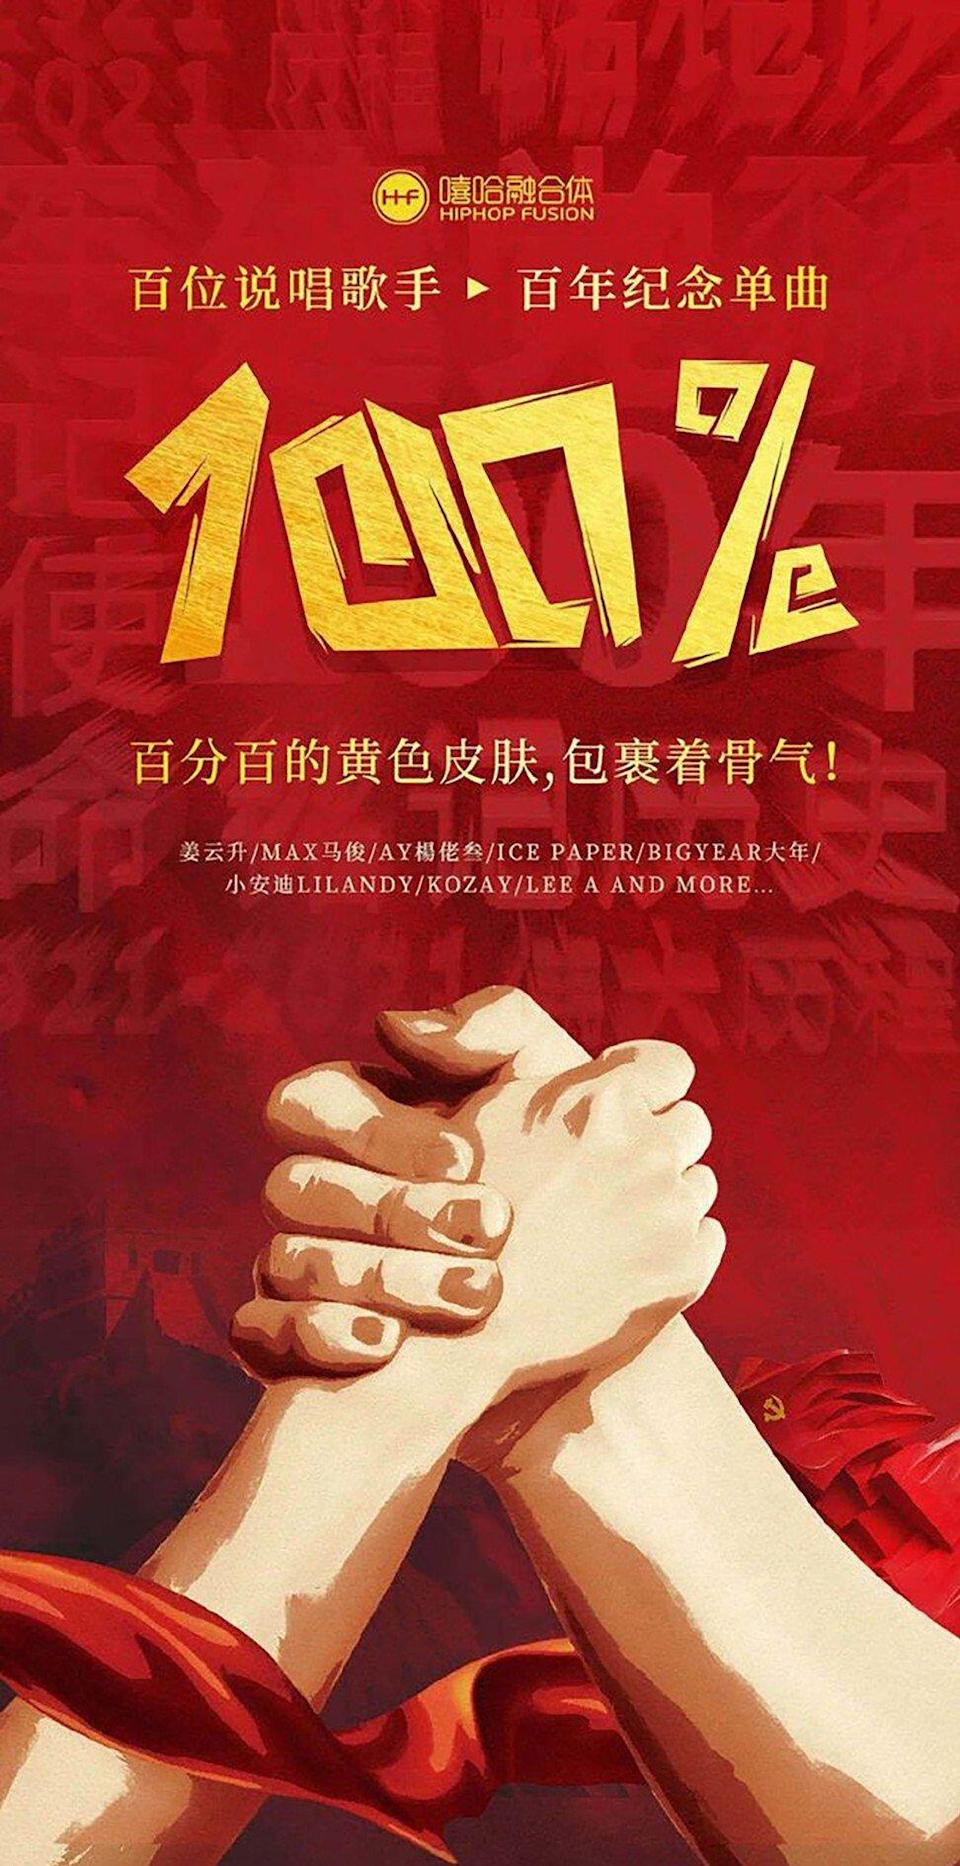 The rap song celebrating the Communist Party's centenary was produced by Shenzhen entertainment company Hip Hop Fusion. Photo: Handout